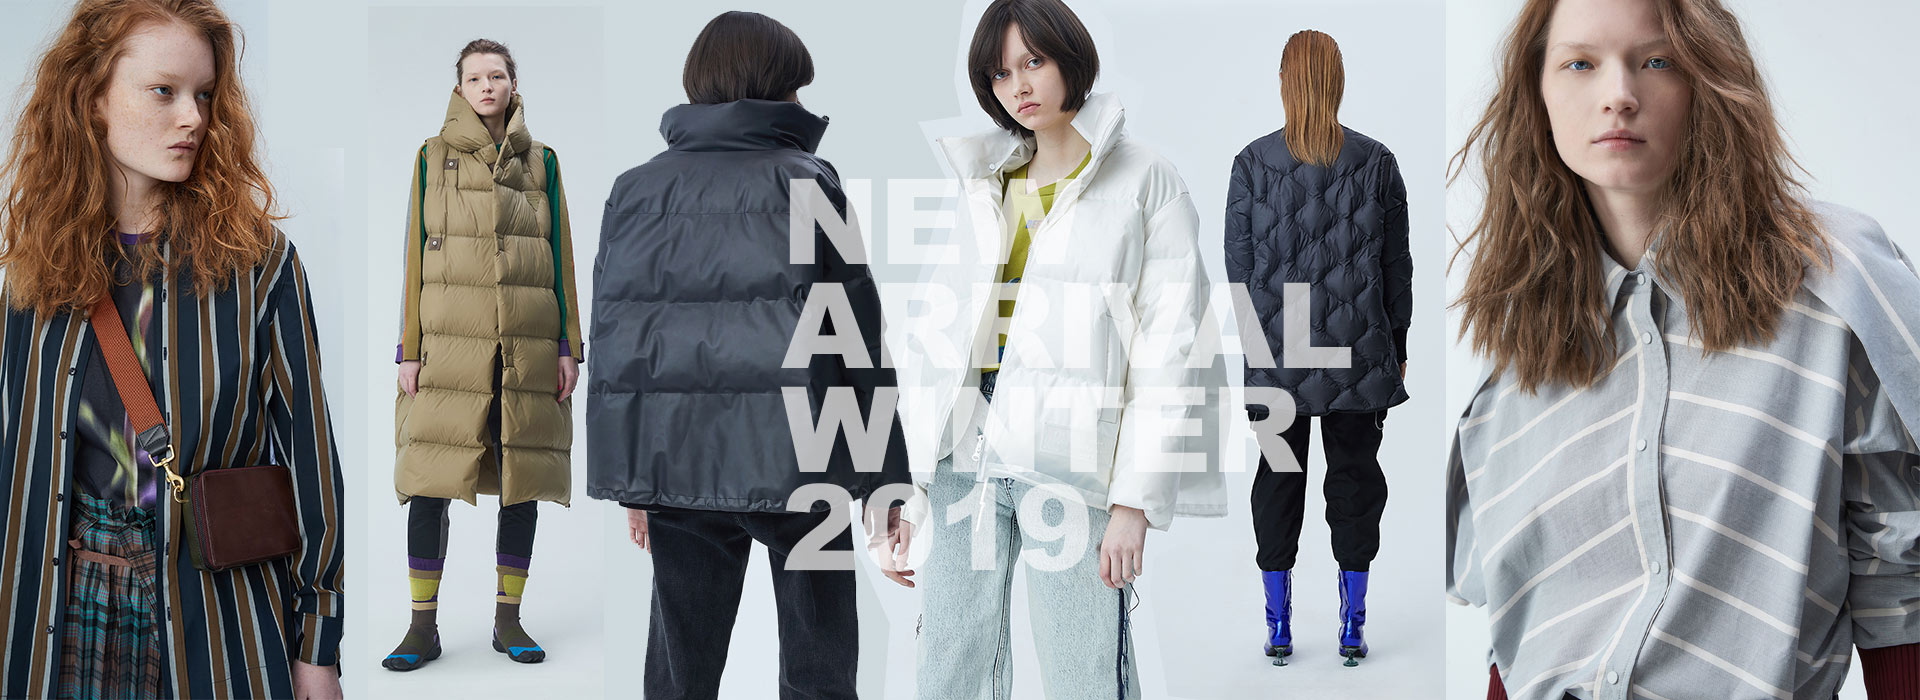 NEW-ARRIVAL-Winter